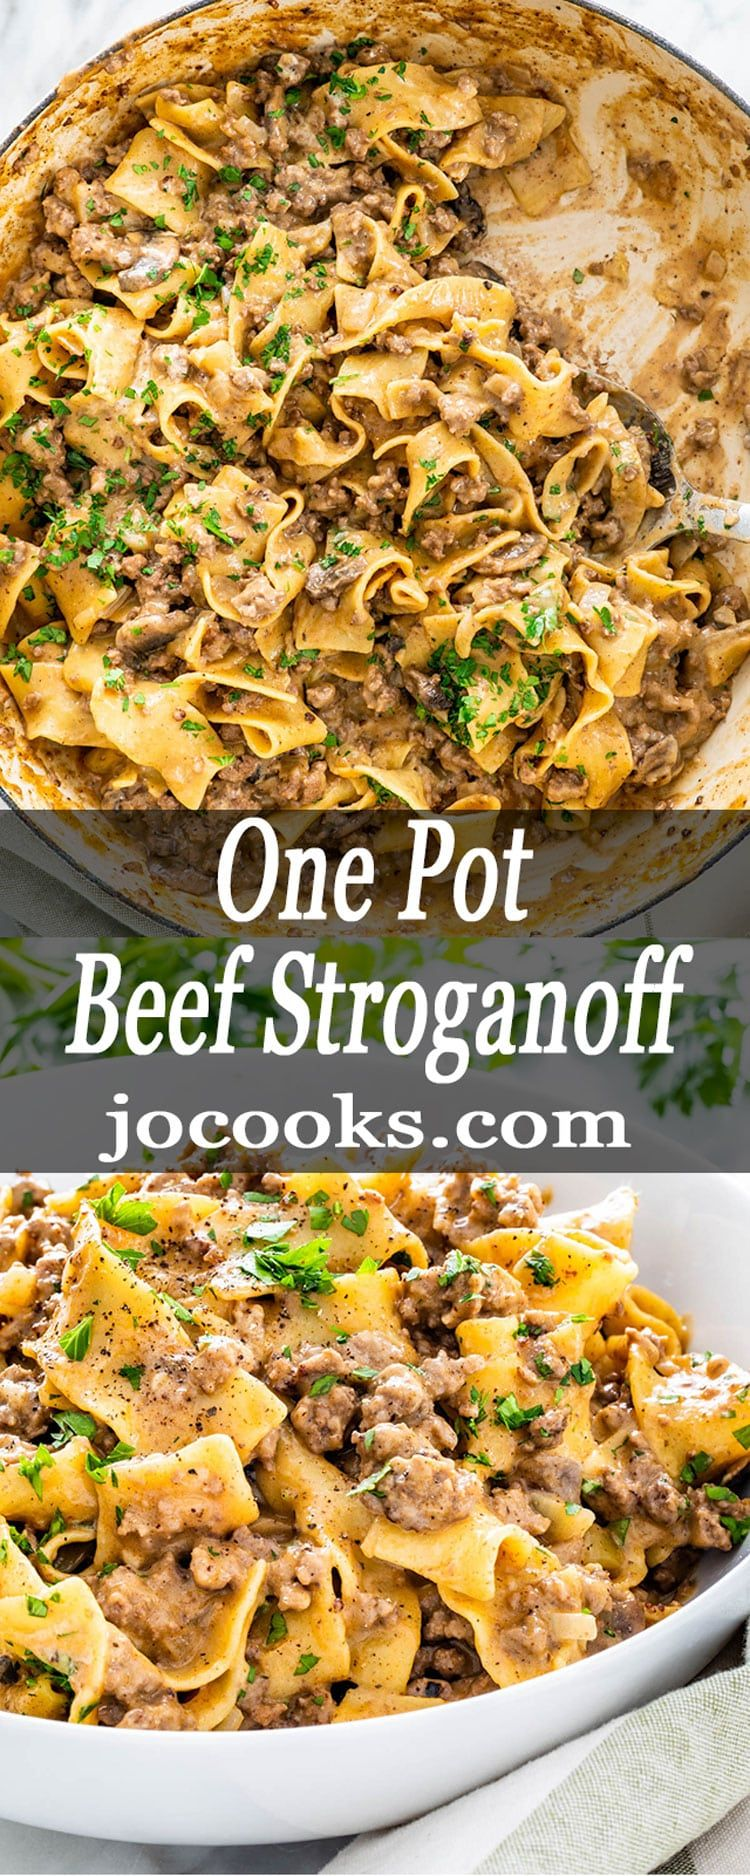 One Pot Beef Stroganoff is a simple weeknight meal With mushrooms and beef in a creamy rich sauce with egg noodles this dreamy dish is packed full of flavor and yumminess